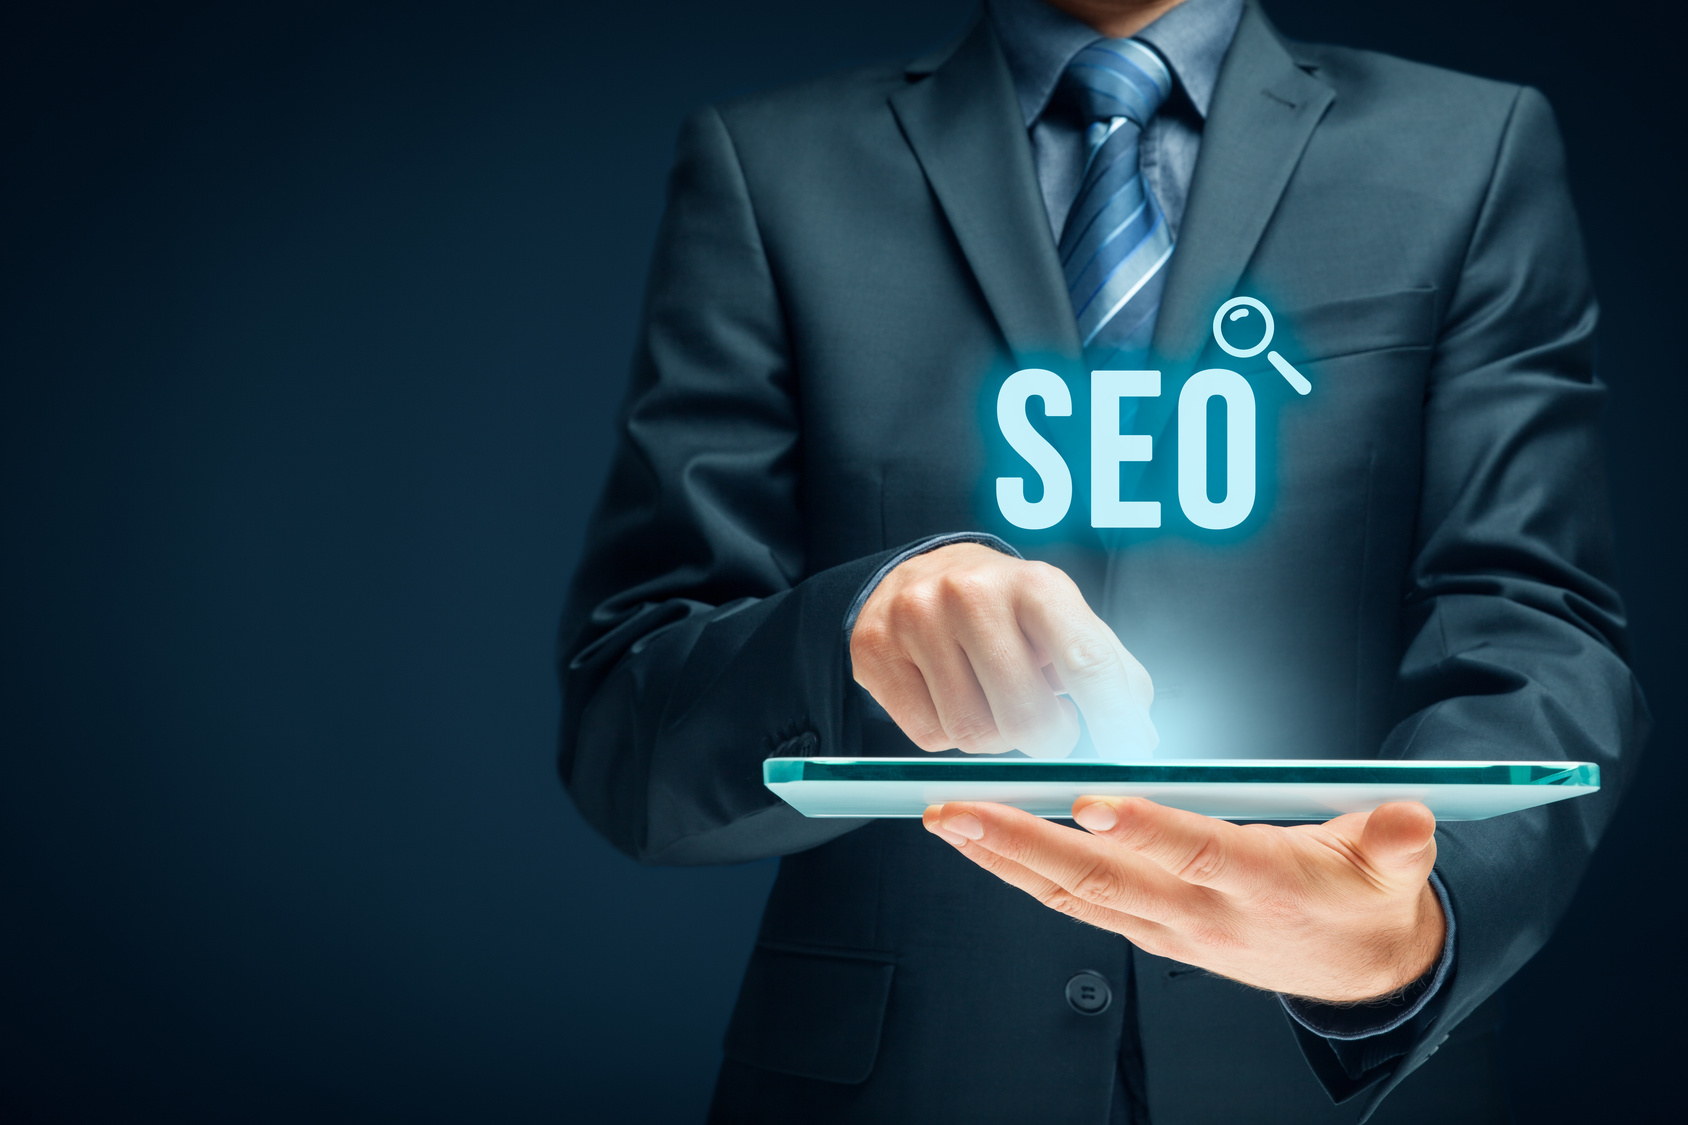 Local Ranking Factors That Help Your Small Business SEO: